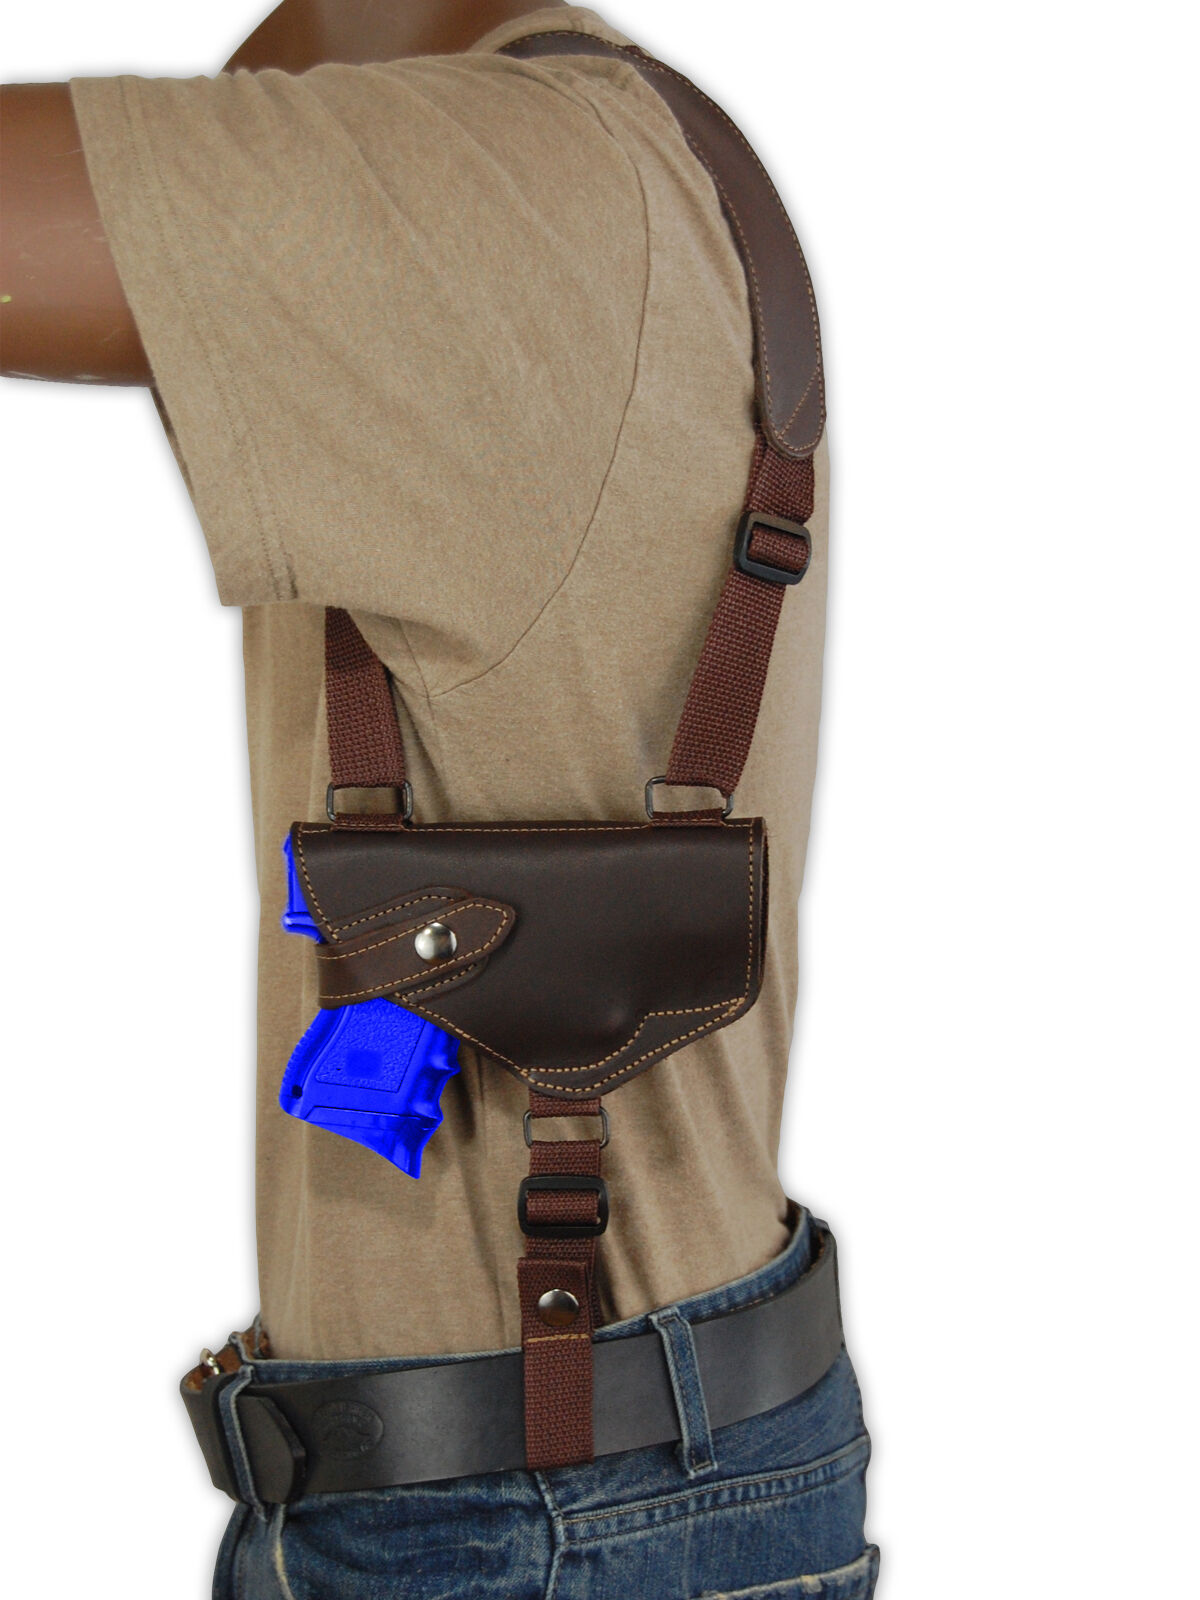 NEW Barsony Braun Leder Horizontal Shoulder Holster Beretta Nano with LASER